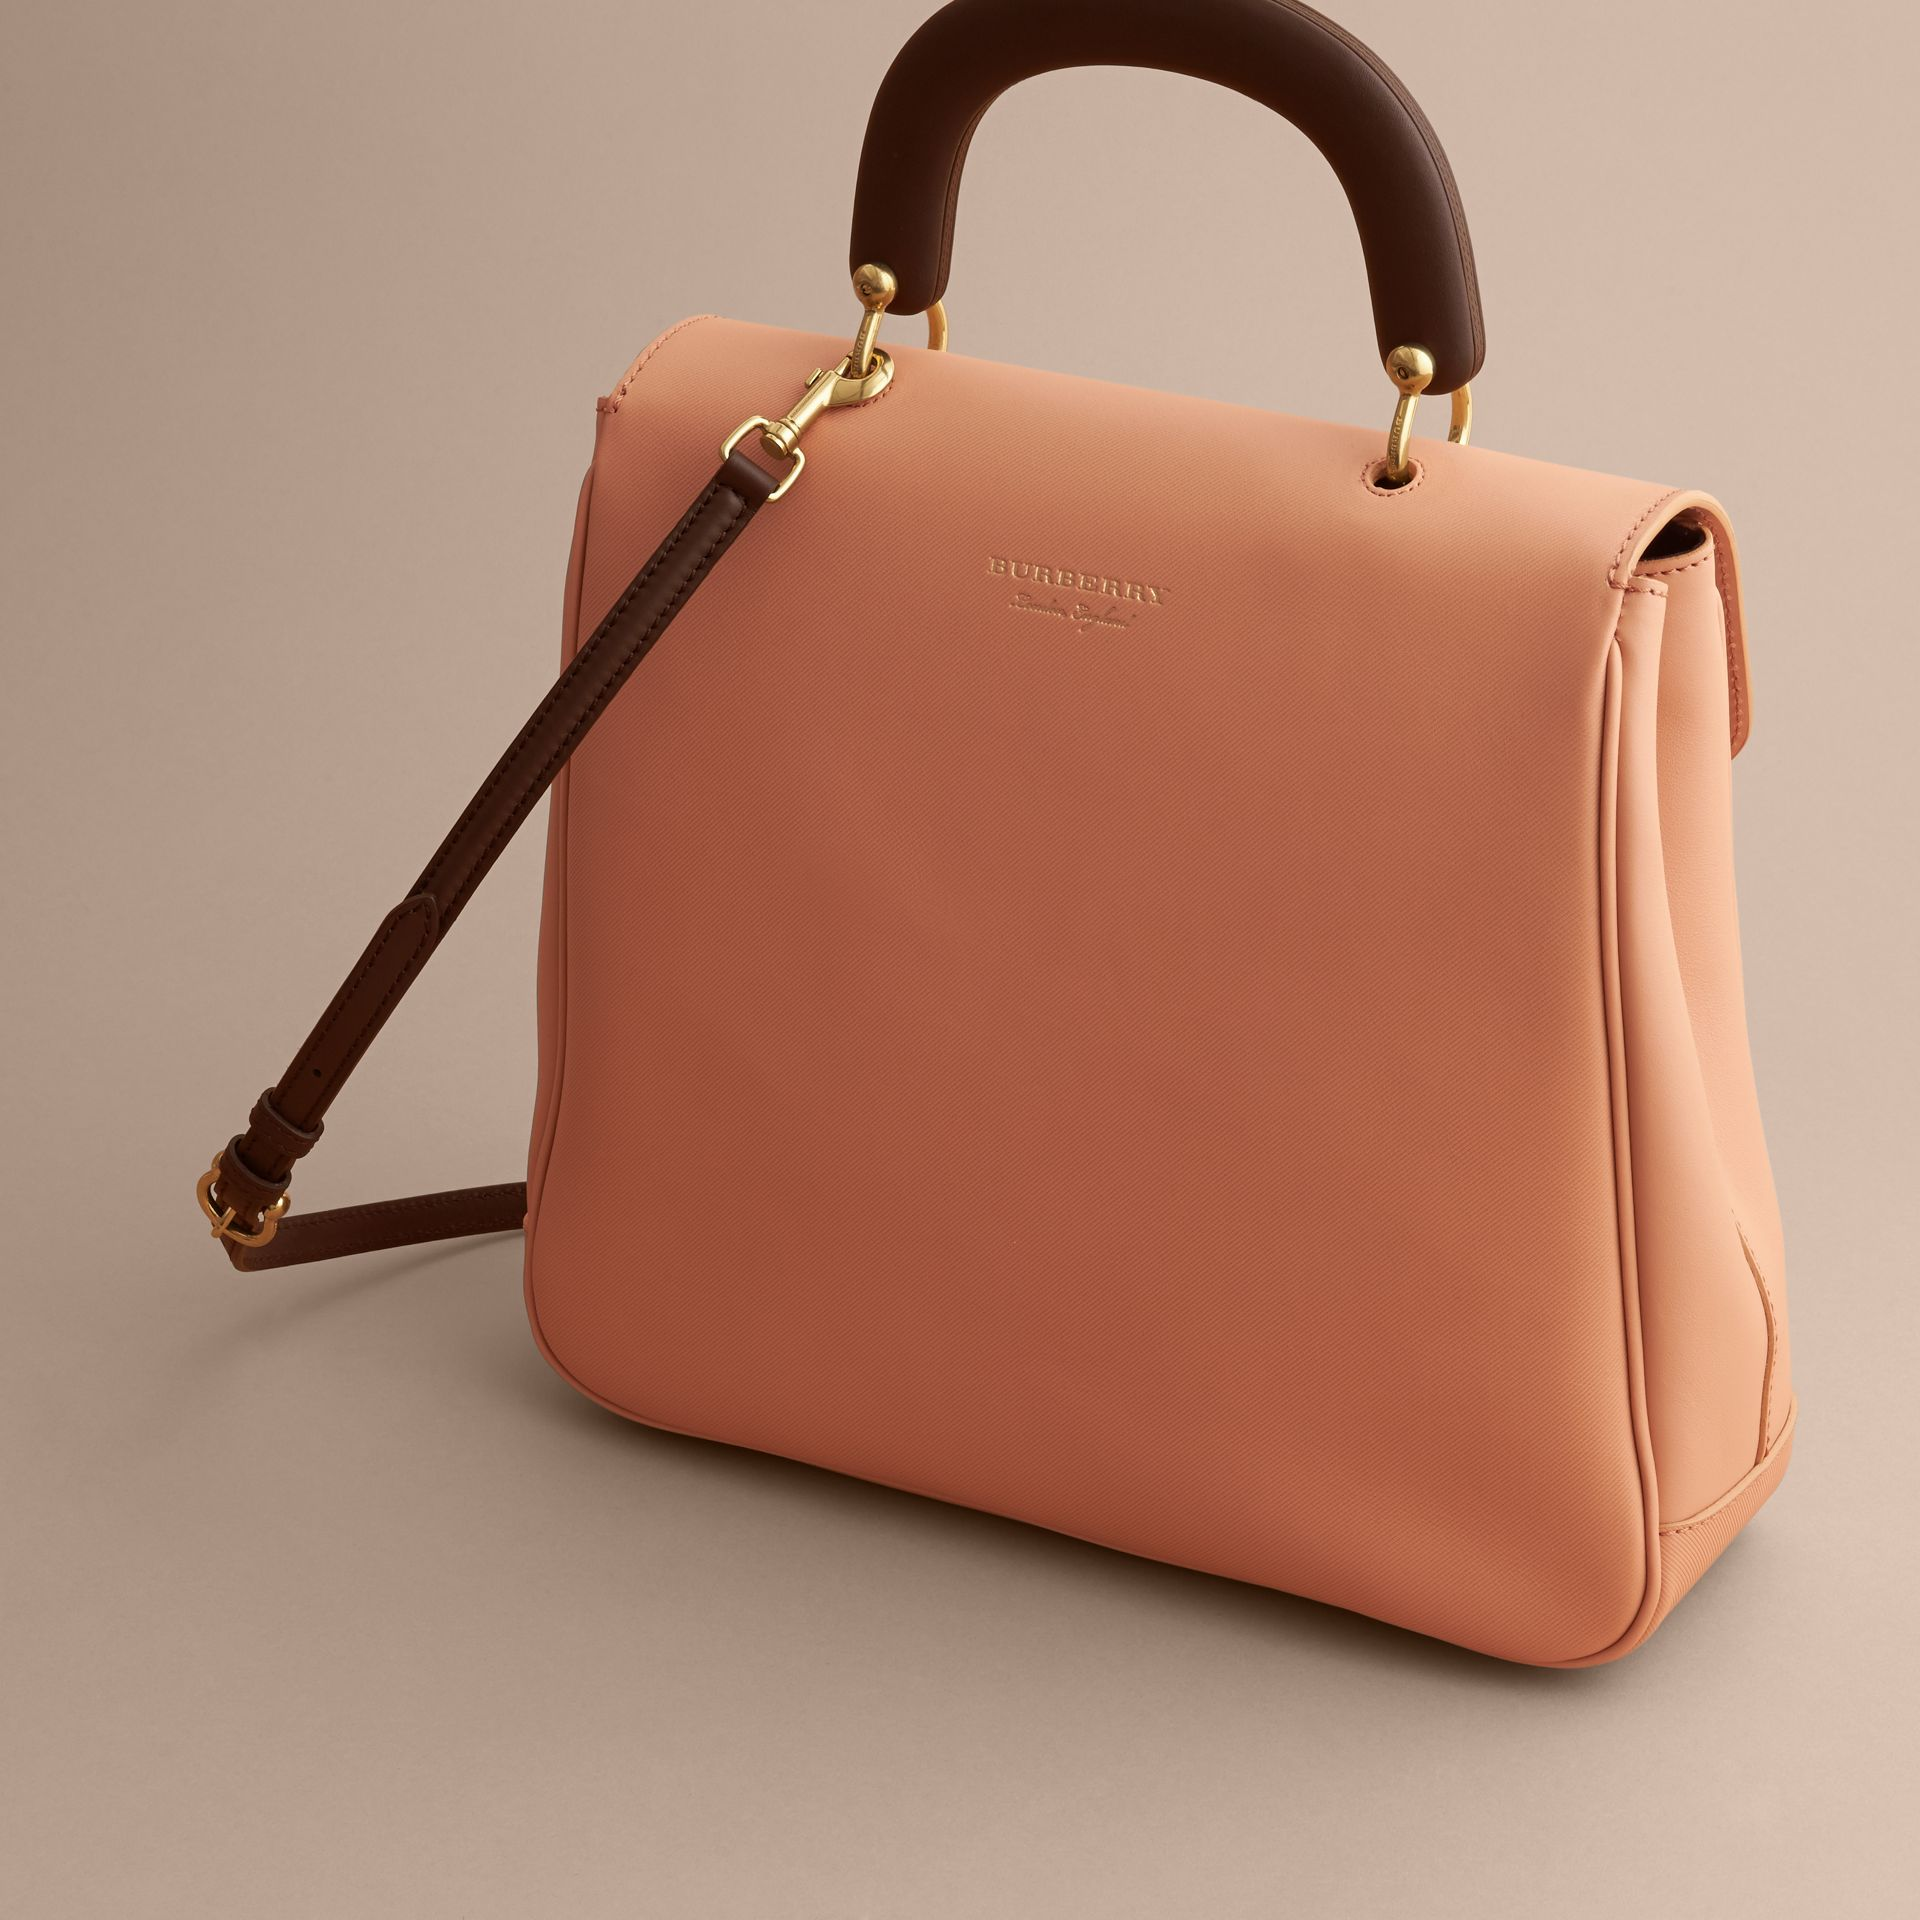 The Large DK88 Top Handle Bag in Pale Clementine - Women | Burberry Hong Kong - gallery image 5